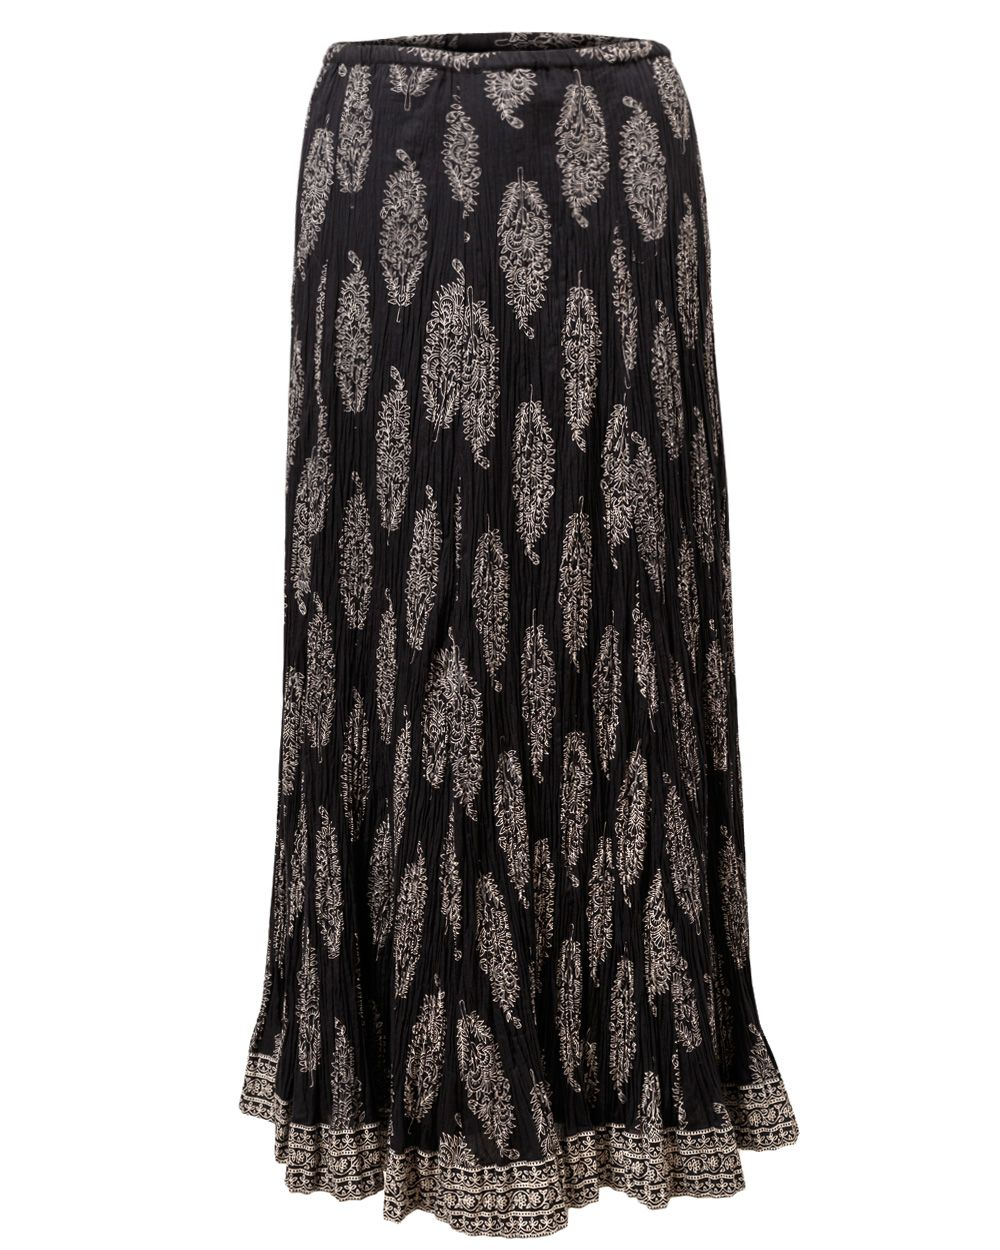 Rambagh Festival Maxi Skirt